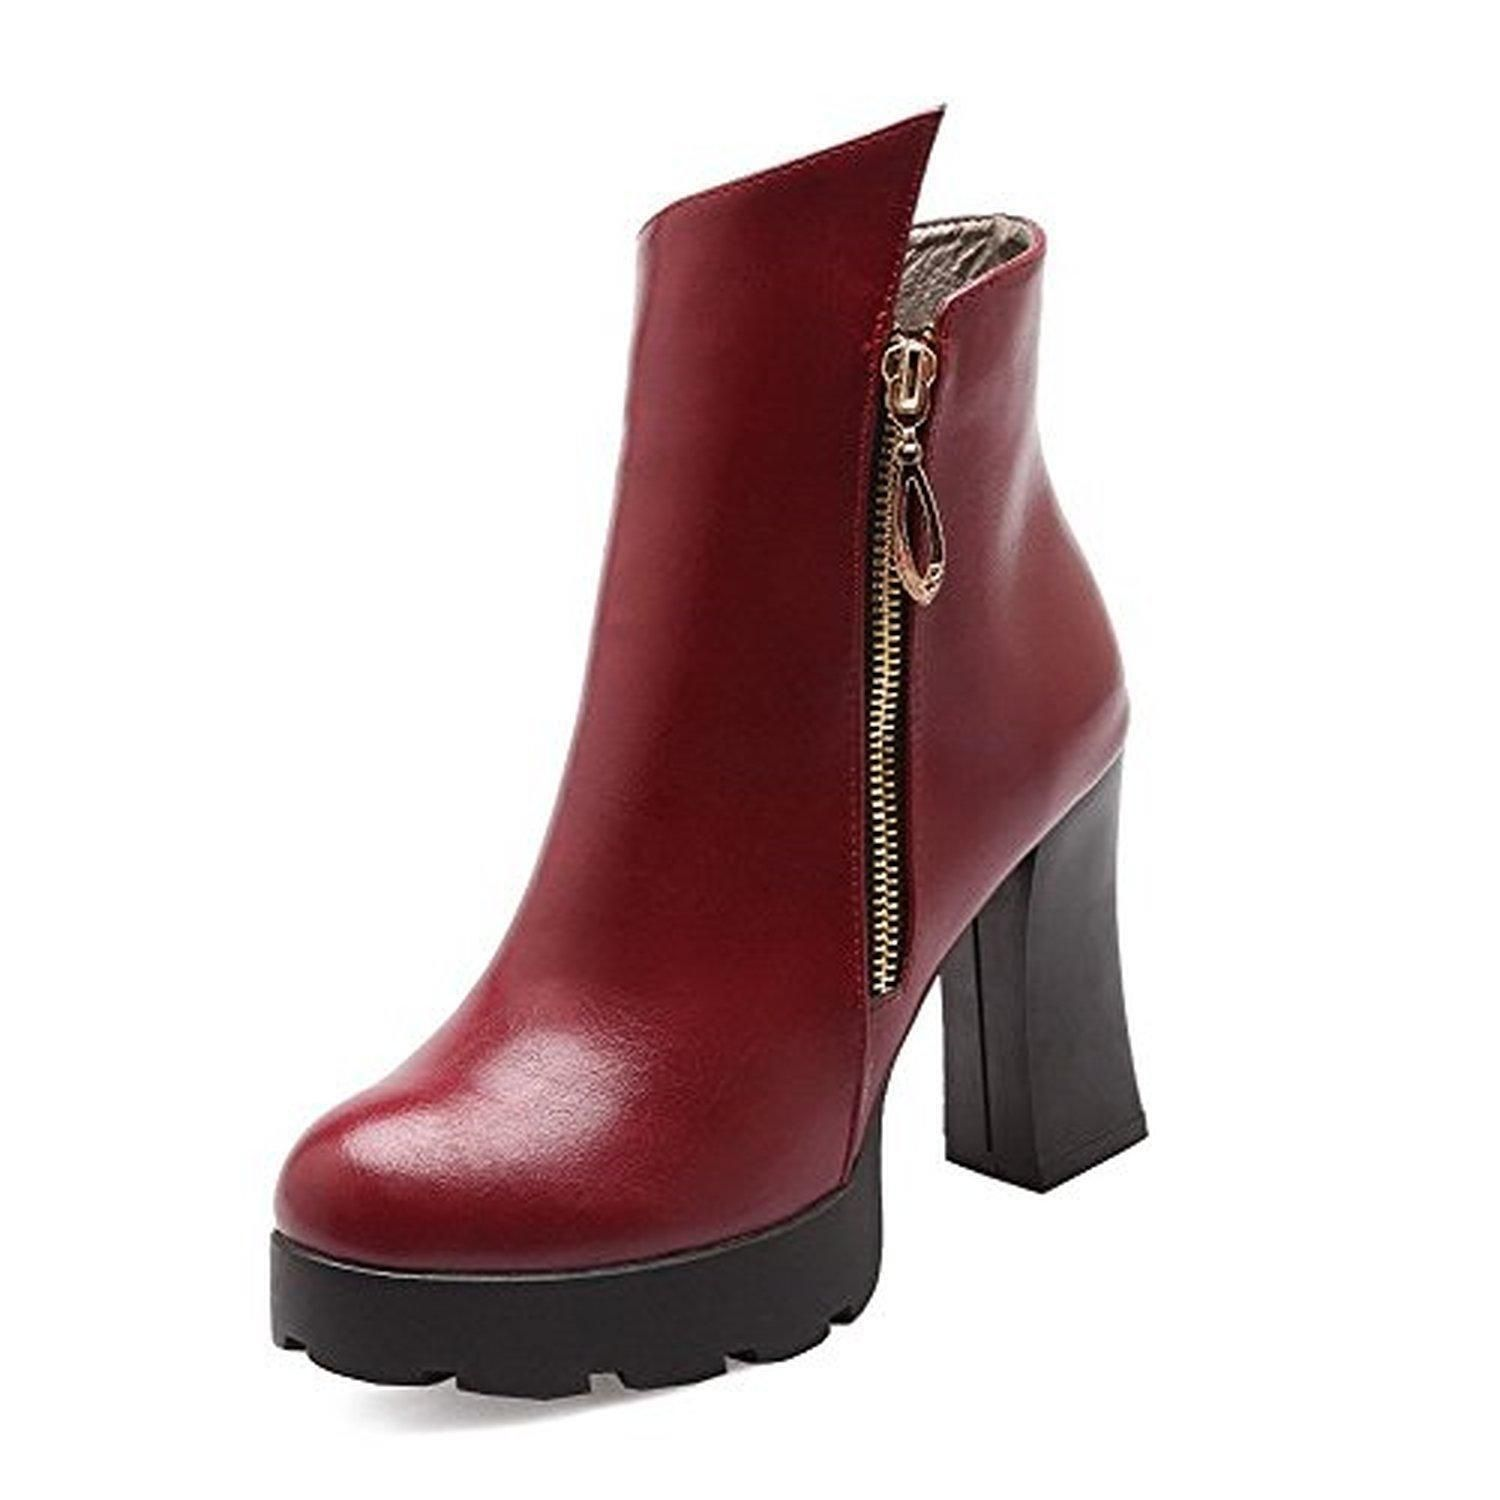 Women's Blend Materials Solid Closed-Toe Boots With Platform and Chunky Heels